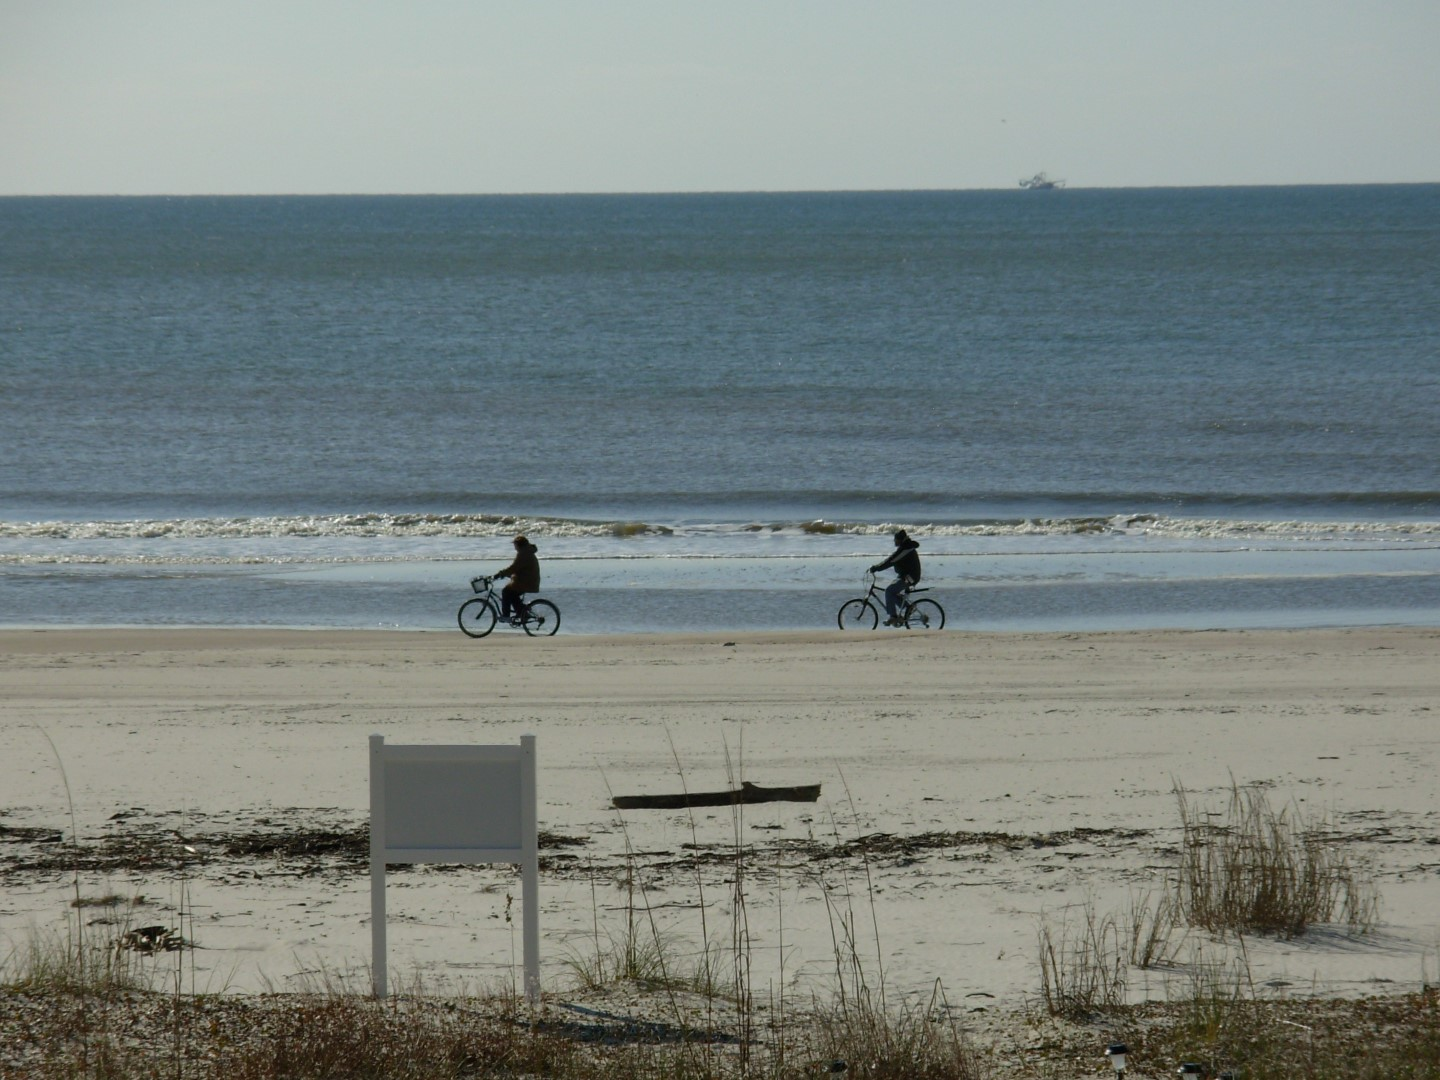 Bike Riding on Beach